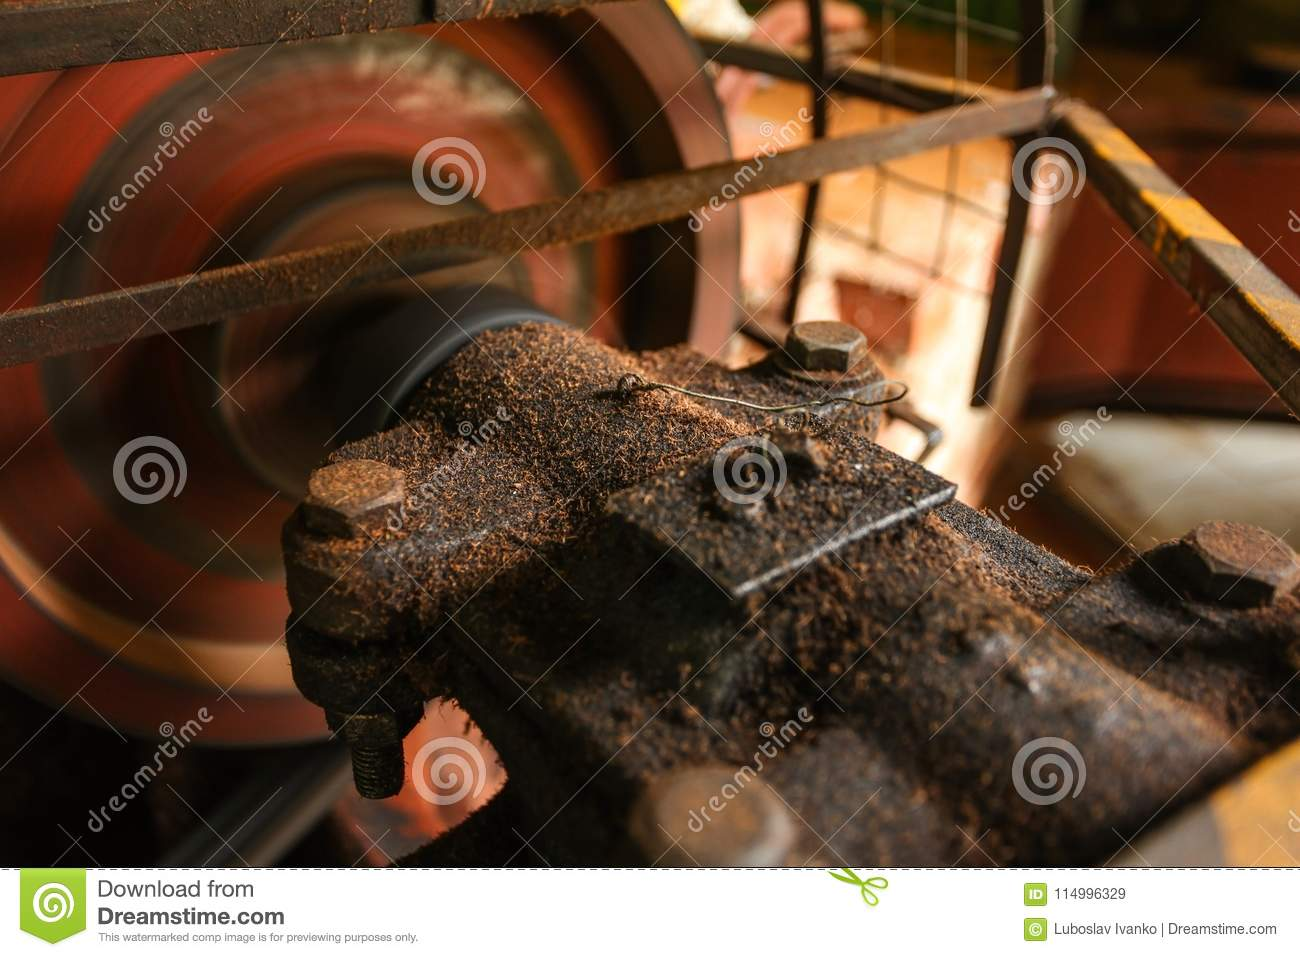 Detail on old rusty motor mechanism, rotor moving, metal axis co